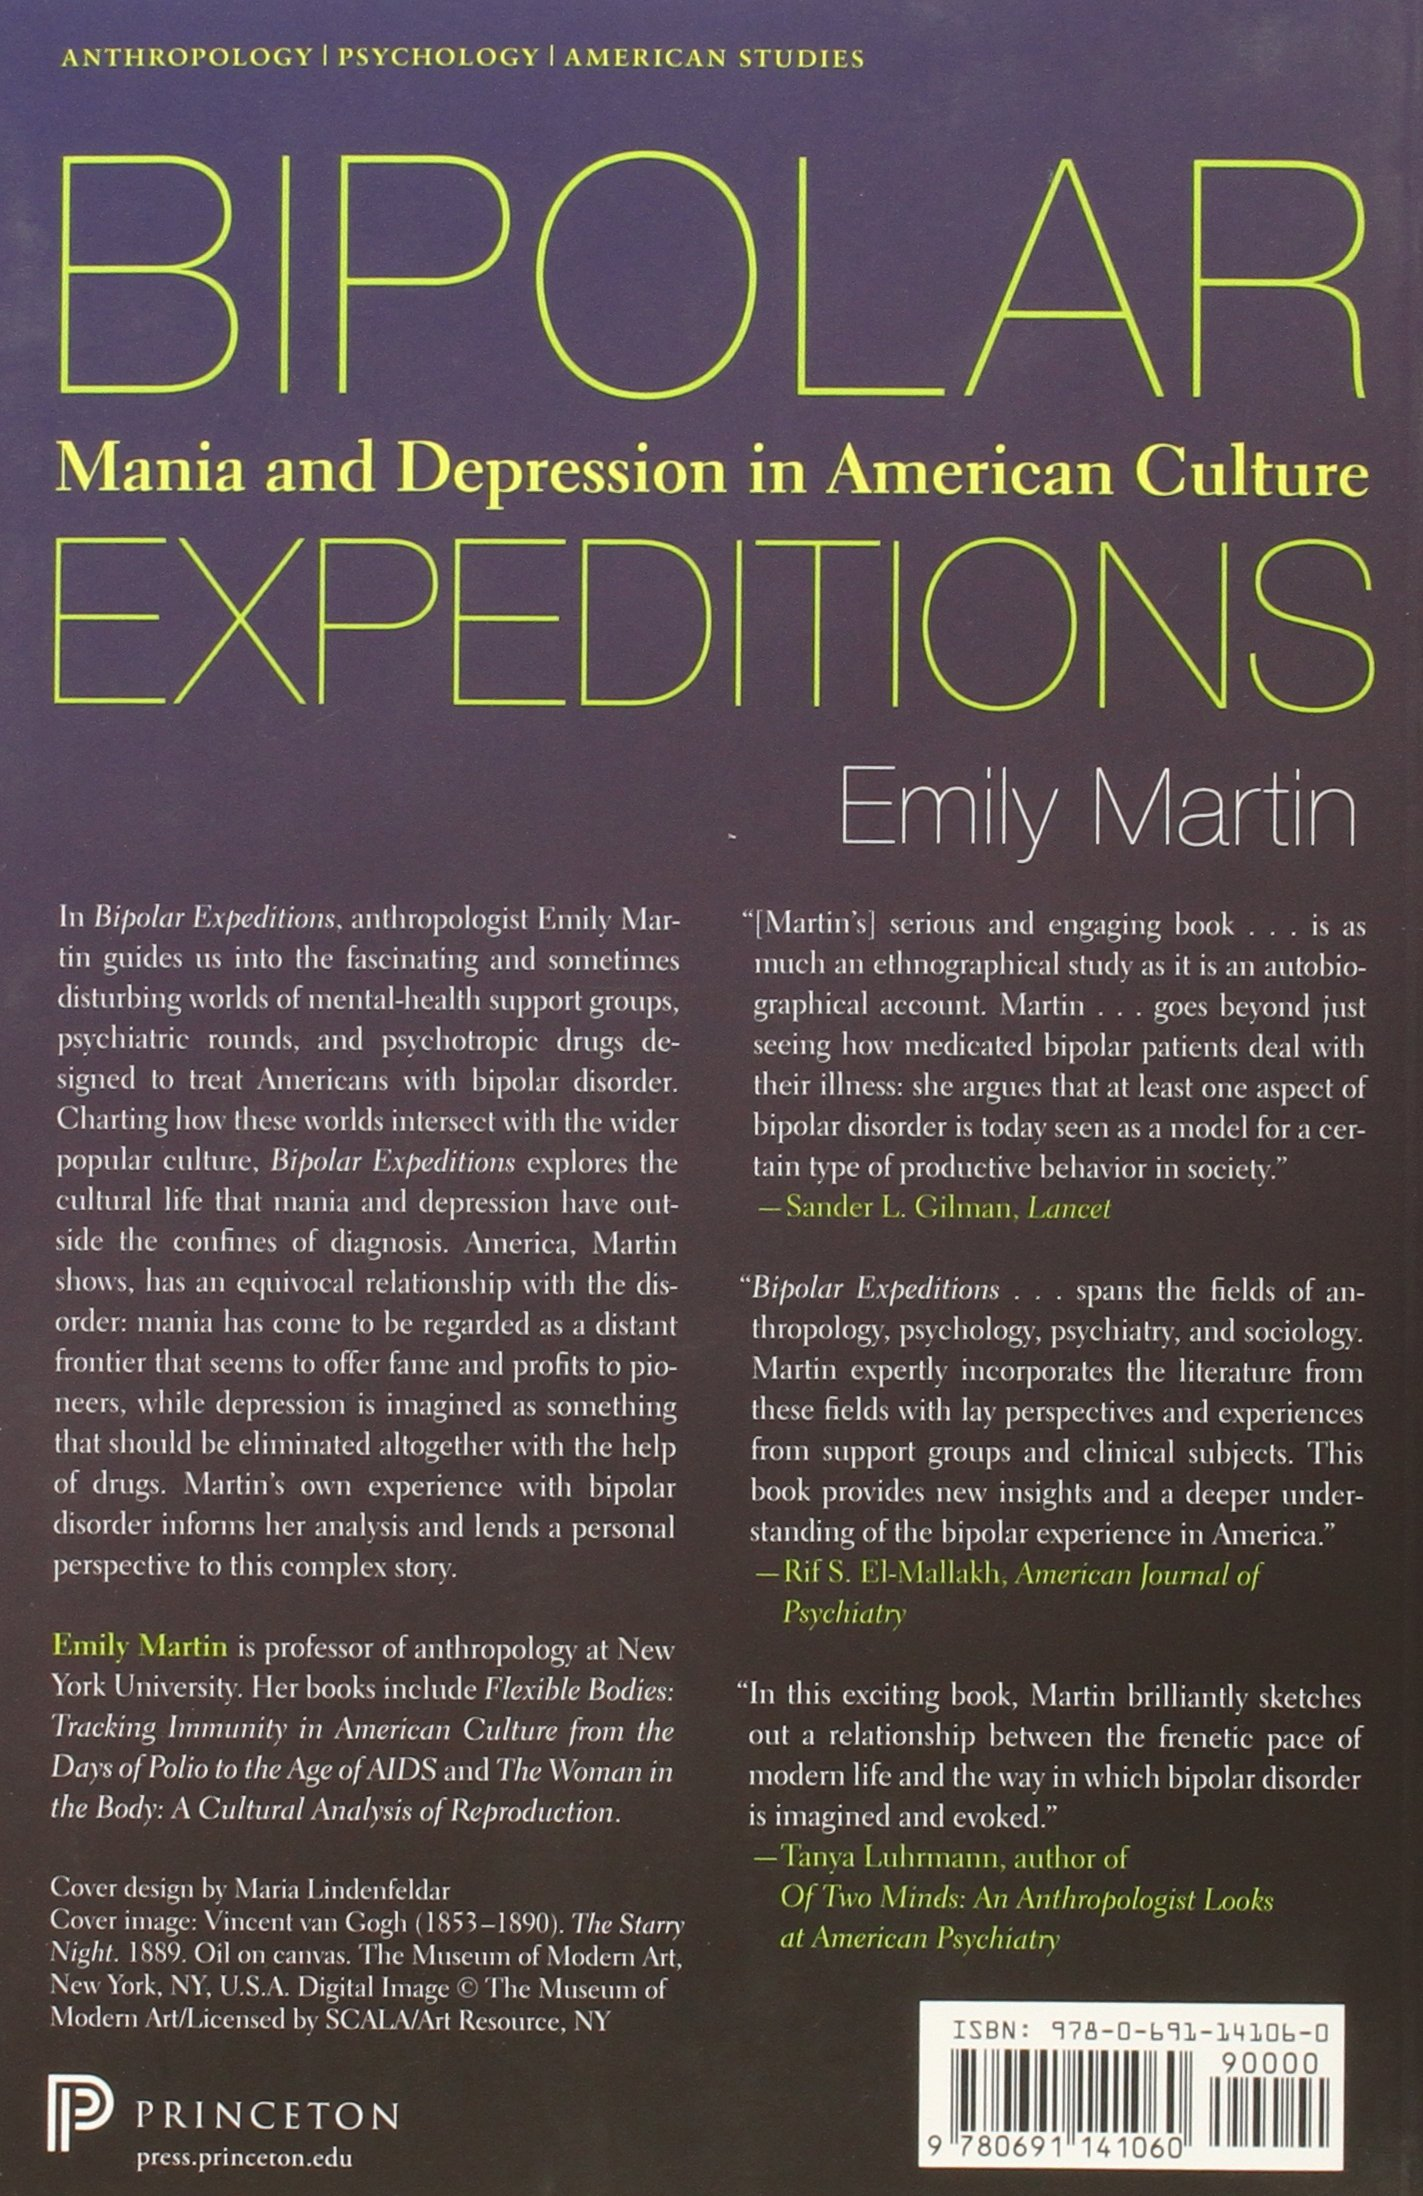 Bipolar Expeditions: Mania and Depression in American Culture: Emily  Martin: 9780691141060: Amazon.com: Books